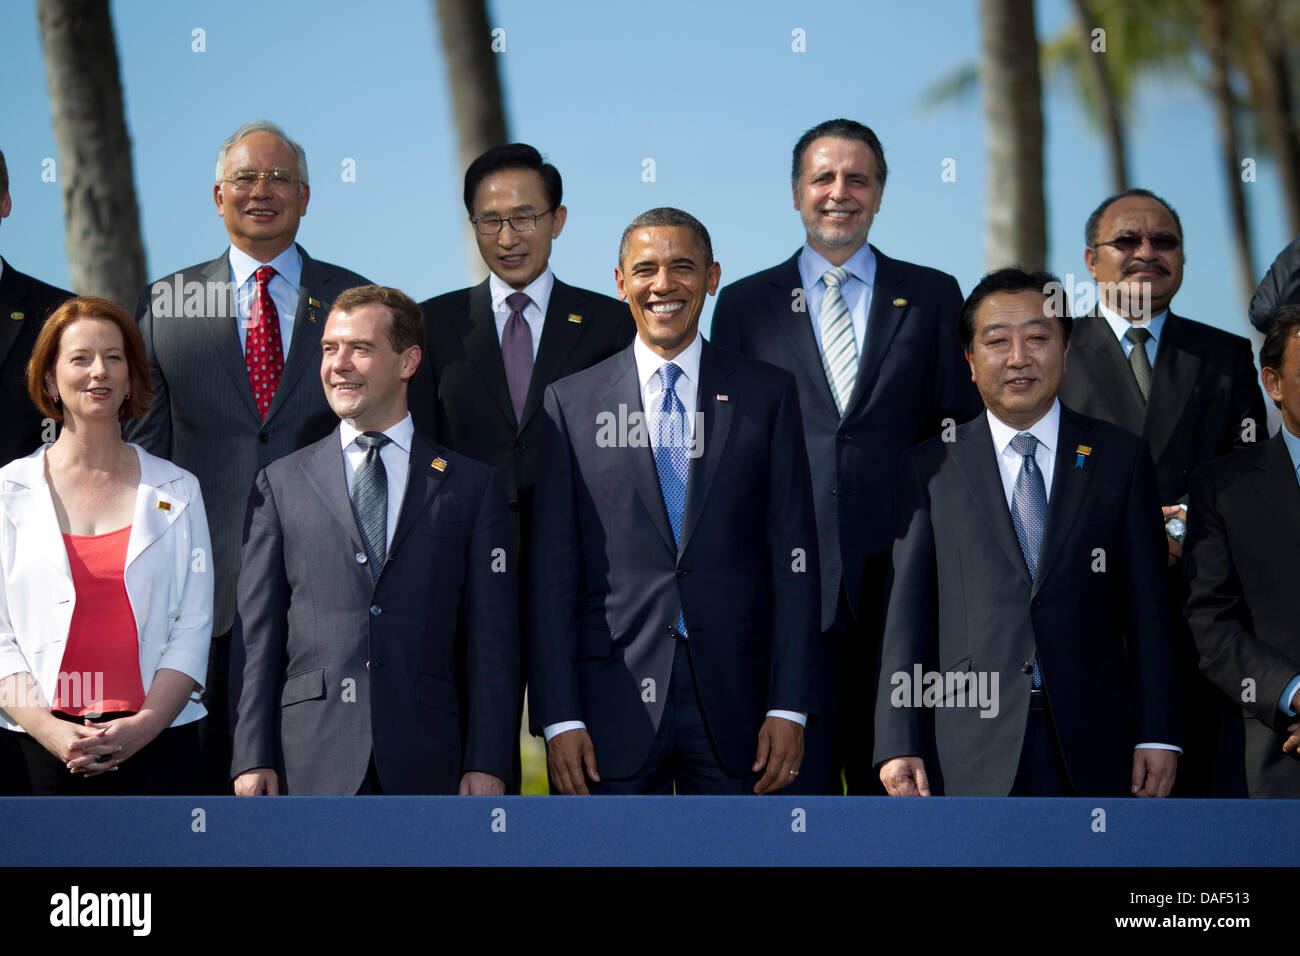 United States President Barack Obama and world leaders pose during the Asia-Pacific Economic Cooperation (APEC) - Stock Image